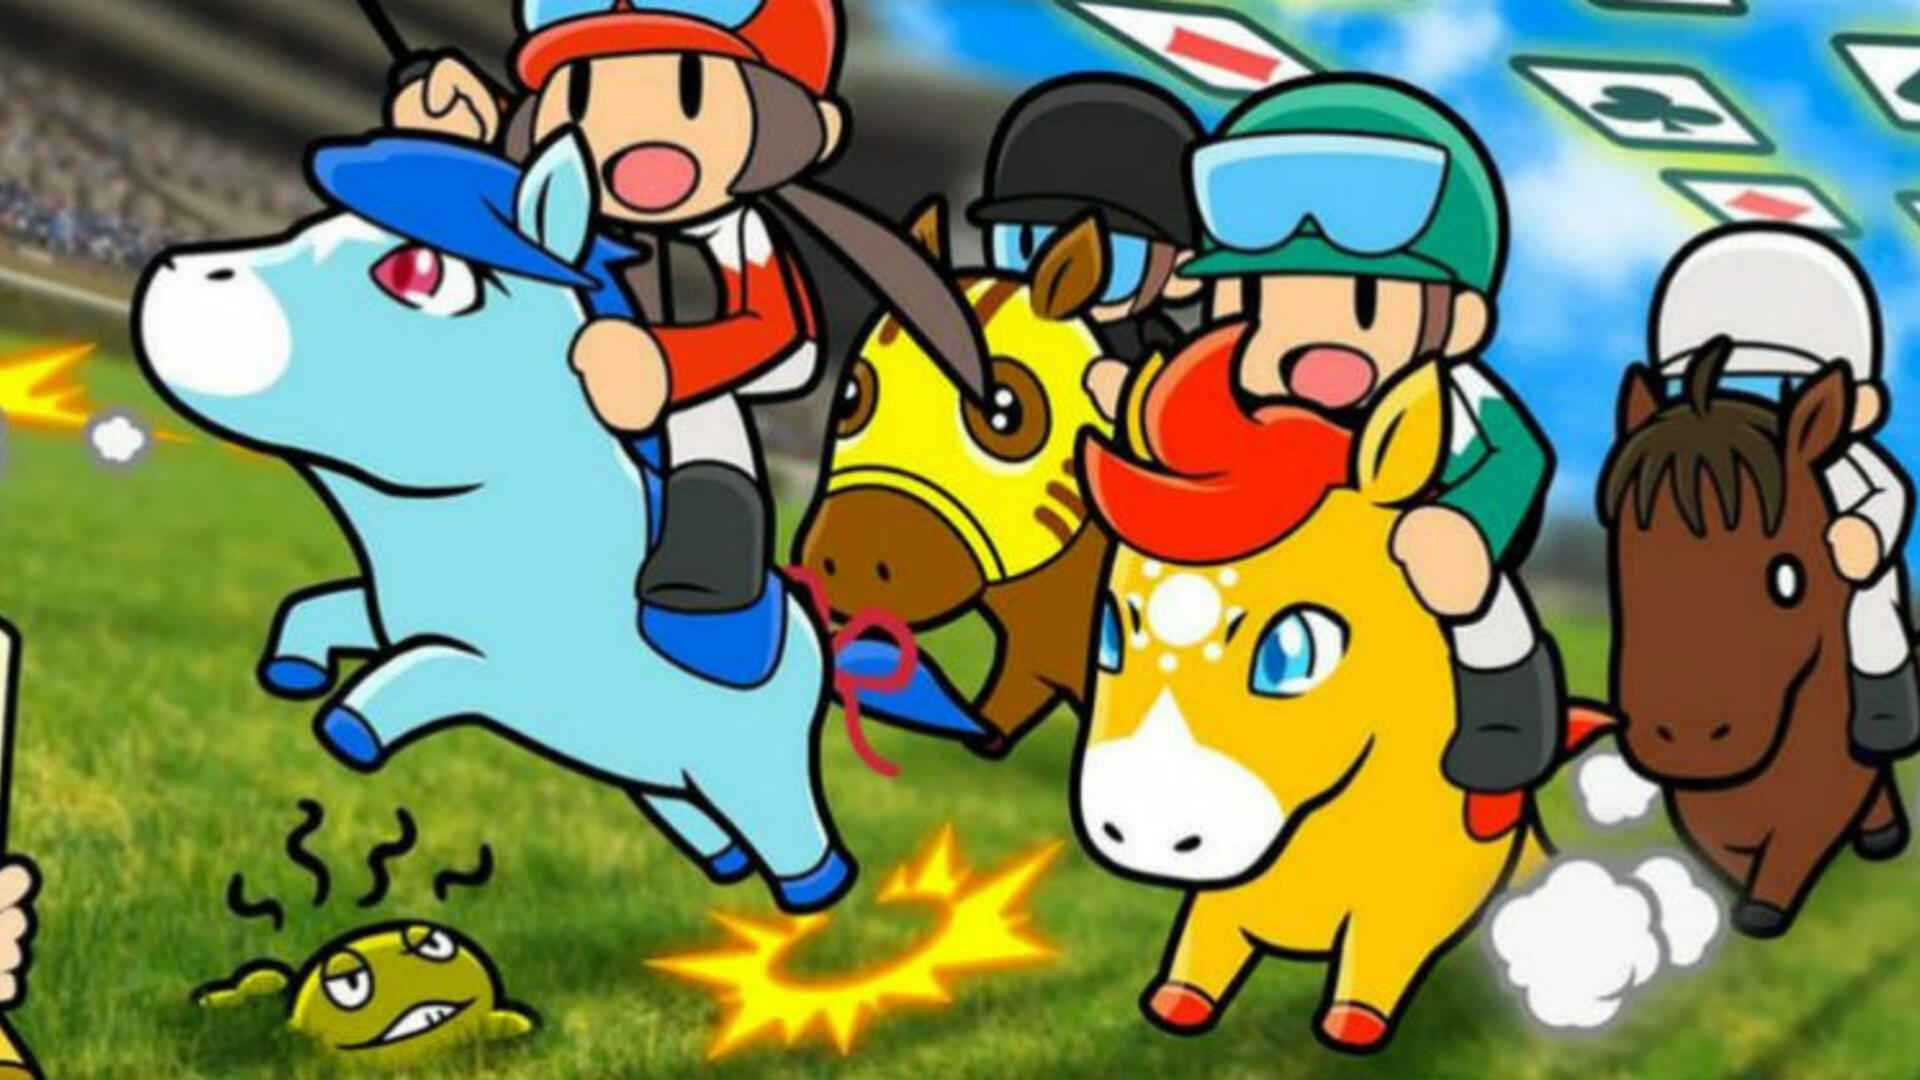 Pocket Card Jockey Nintendo 3DS Review: Let This Dark Horse Run